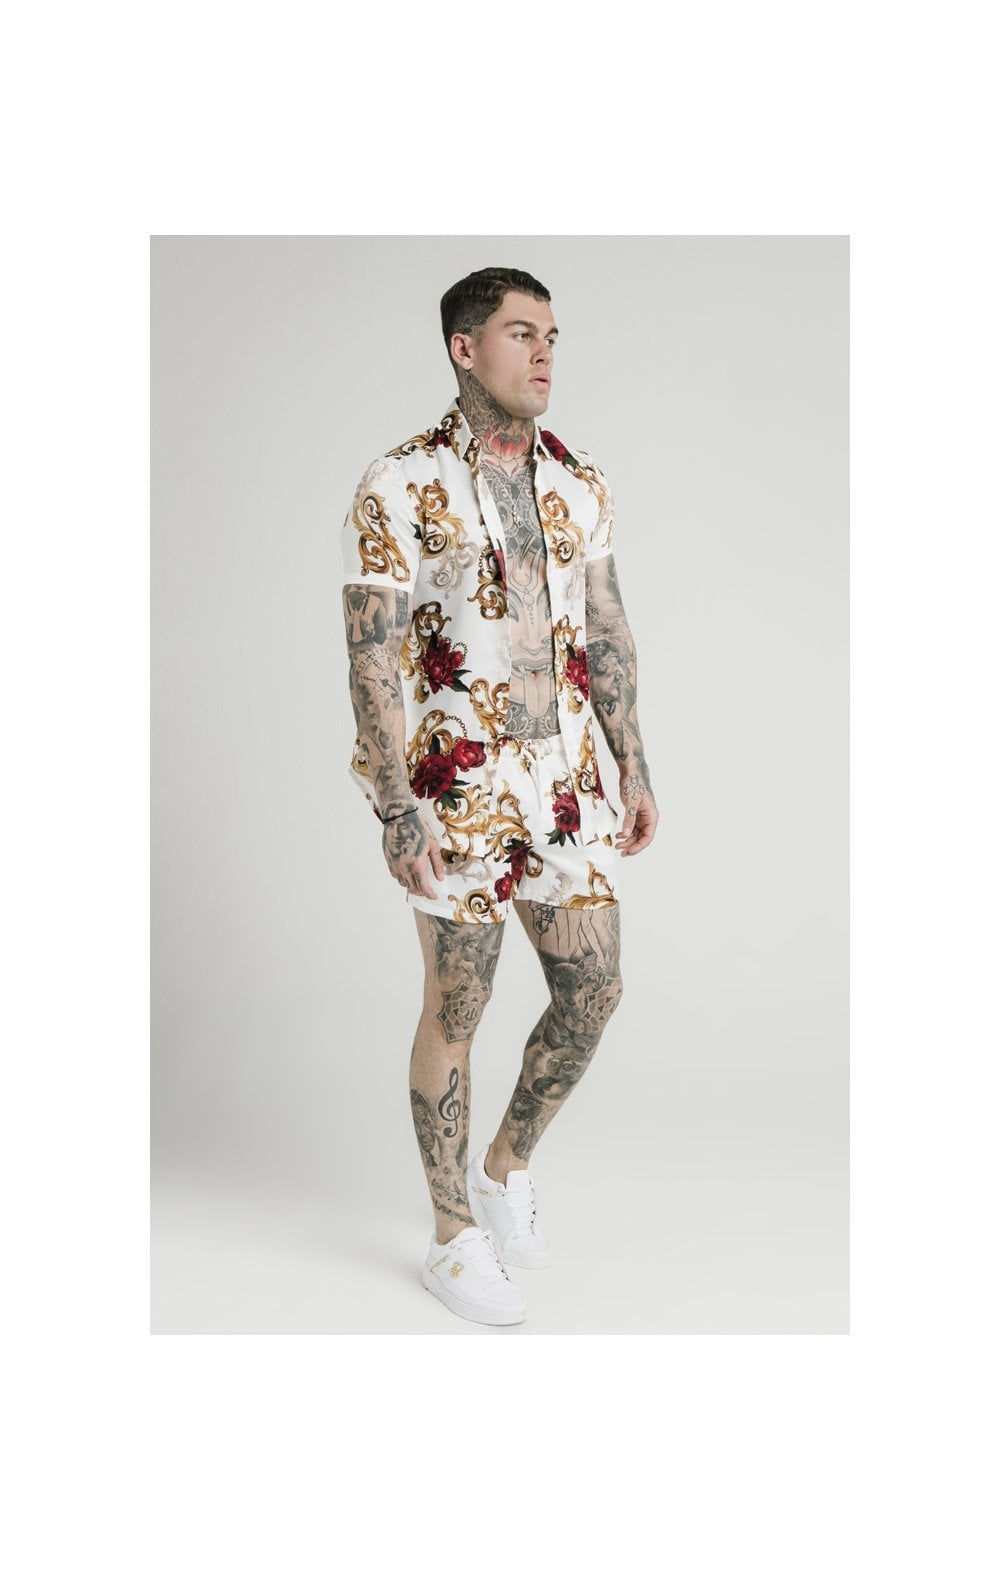 SikSilk x Dani Alves Swim Shorts - Floral Elegance (5)